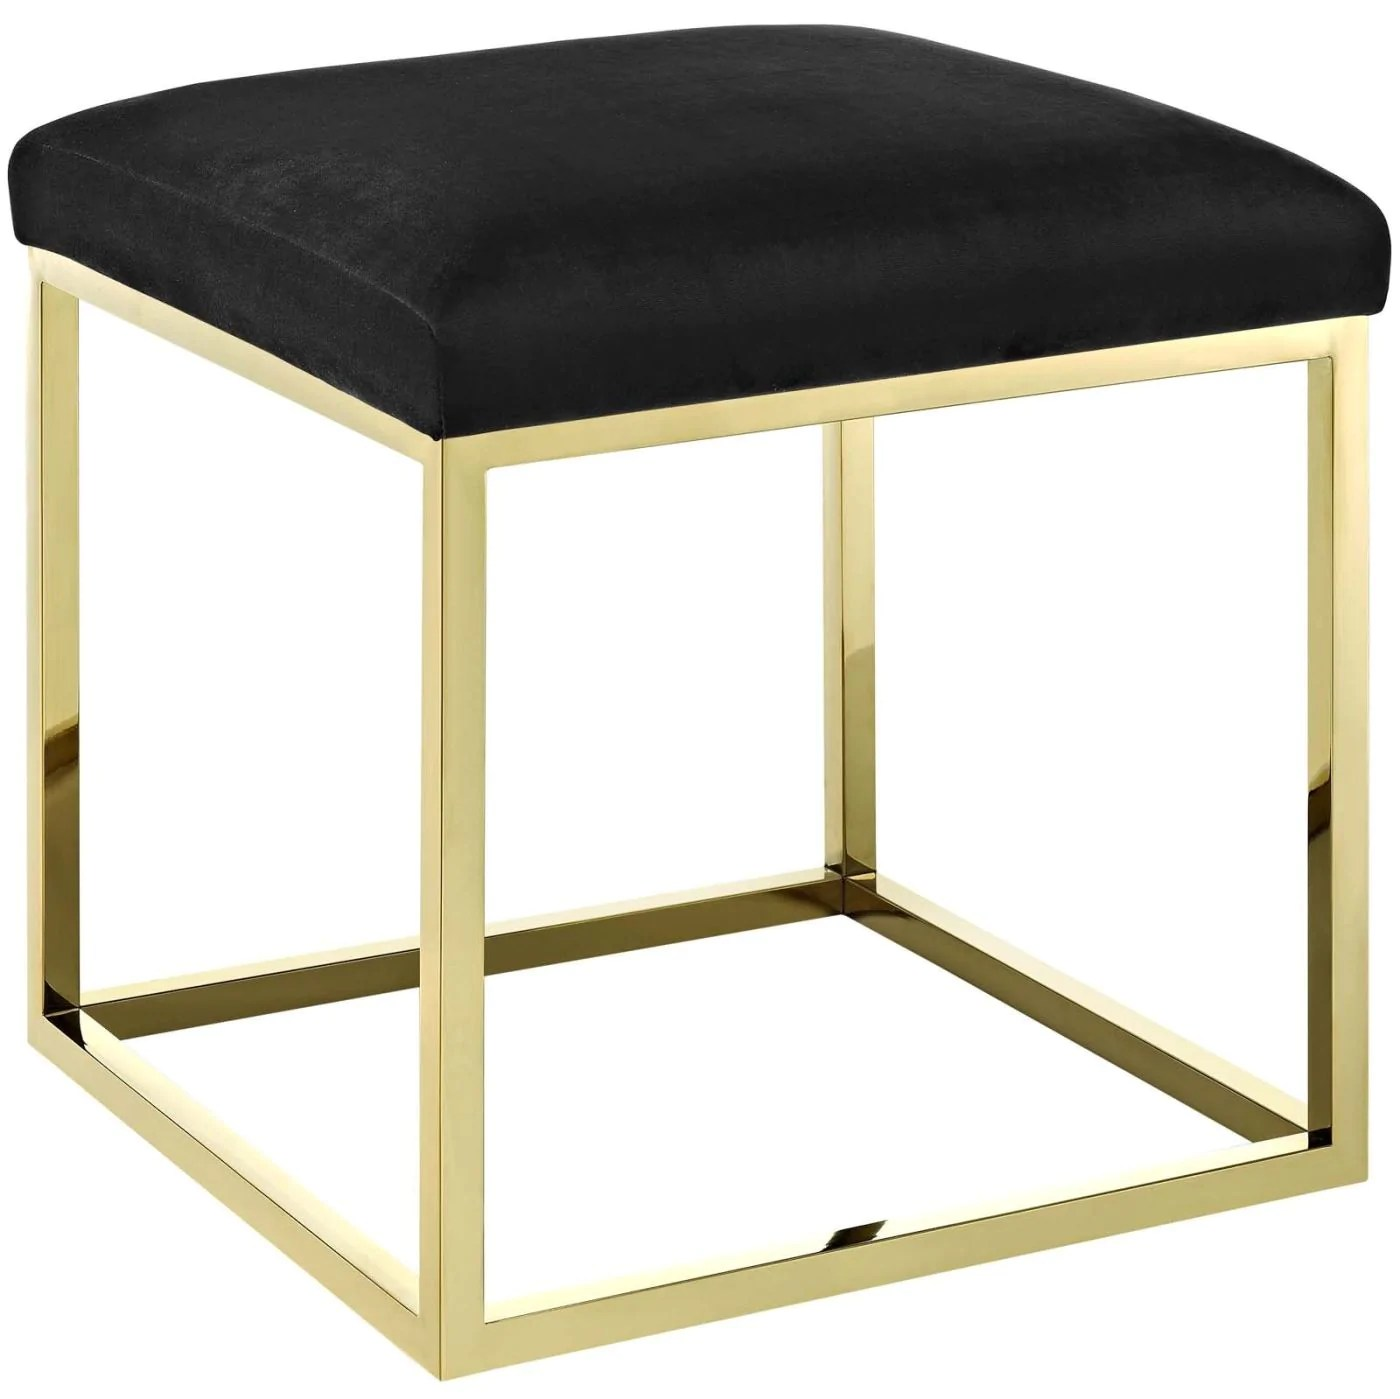 Ottoman Upholstery Modway Ottomans On Sale Eei 2849 Gld Blk Anticipate Velvet Upholstery Gold Stainless Steel Ottoman Only Only 181 00 At Contemporary Furniture